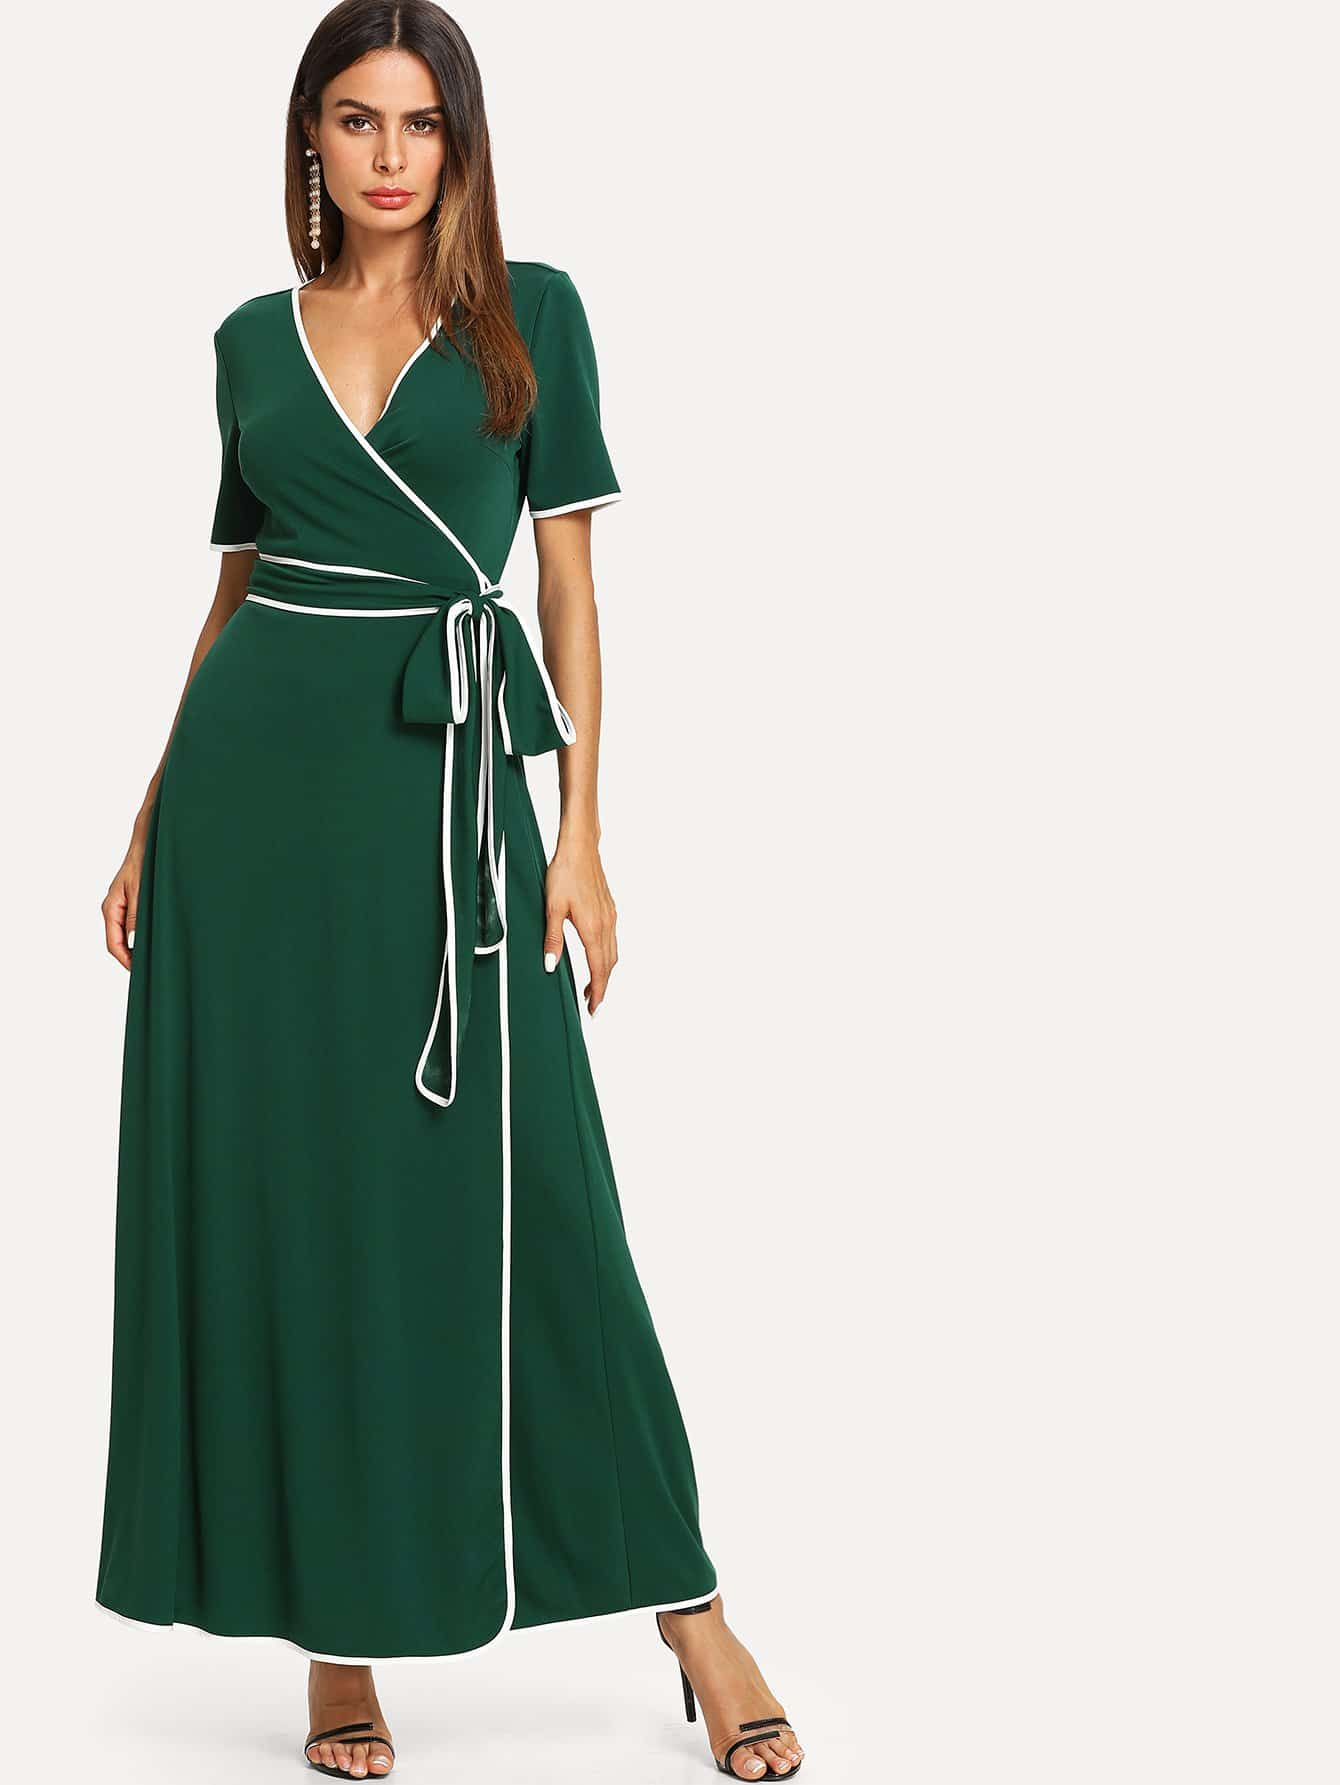 Contrast Binding Belted Wrap Dress contrast binding wrap dress